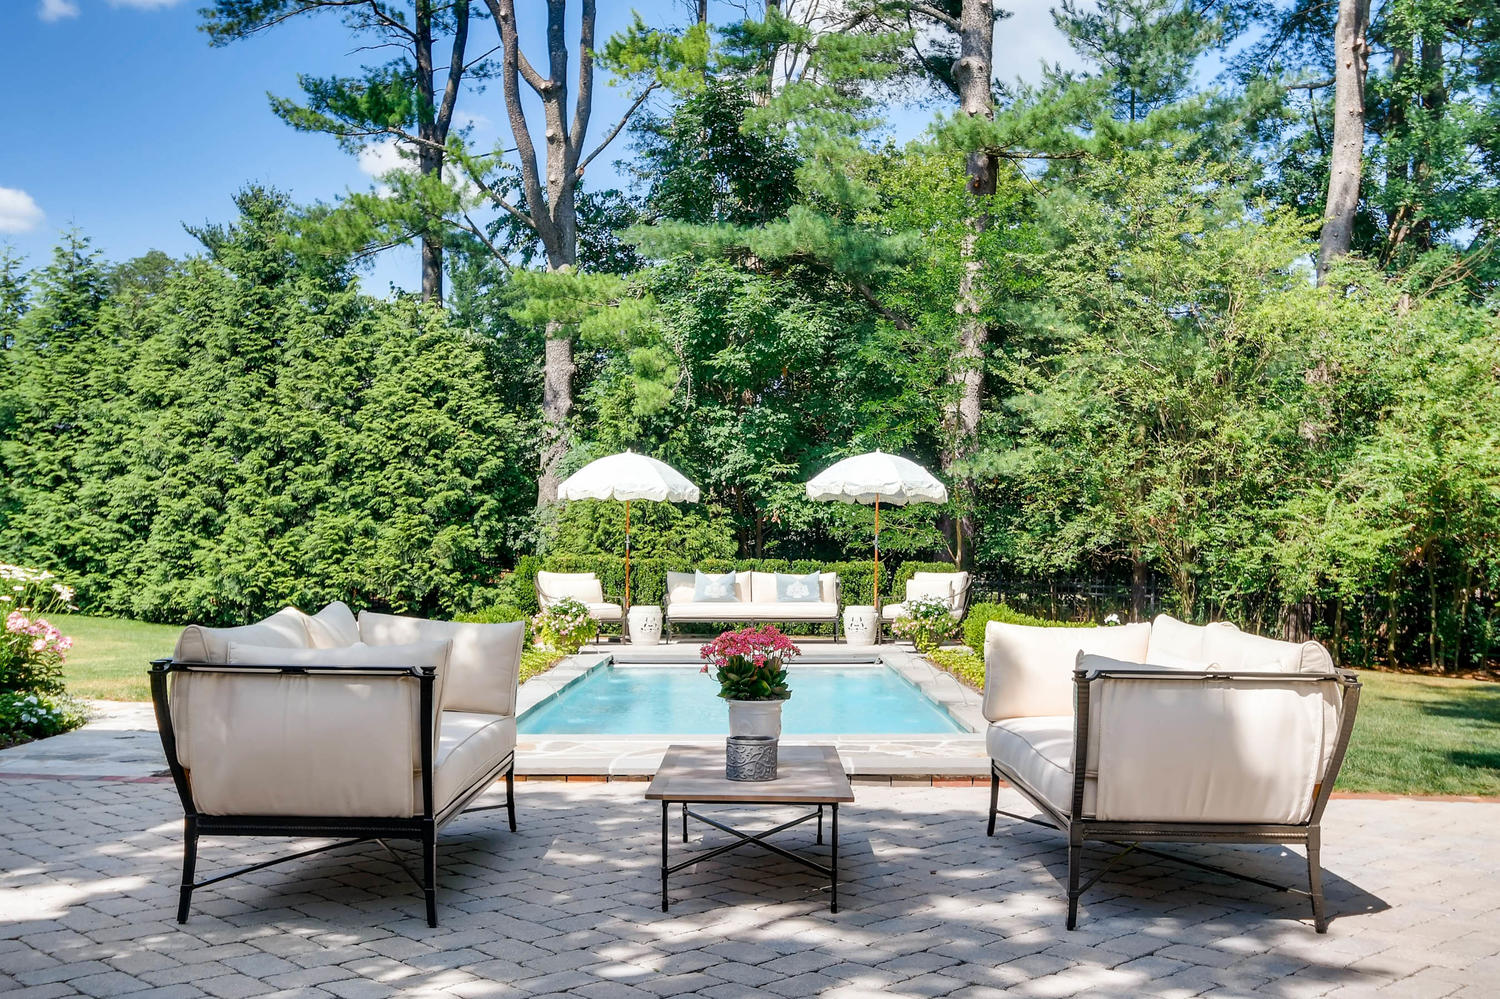 511 Chadwick Rd Lutherville MD-large-002-22-Pool-1500x999-72dpi.jpg